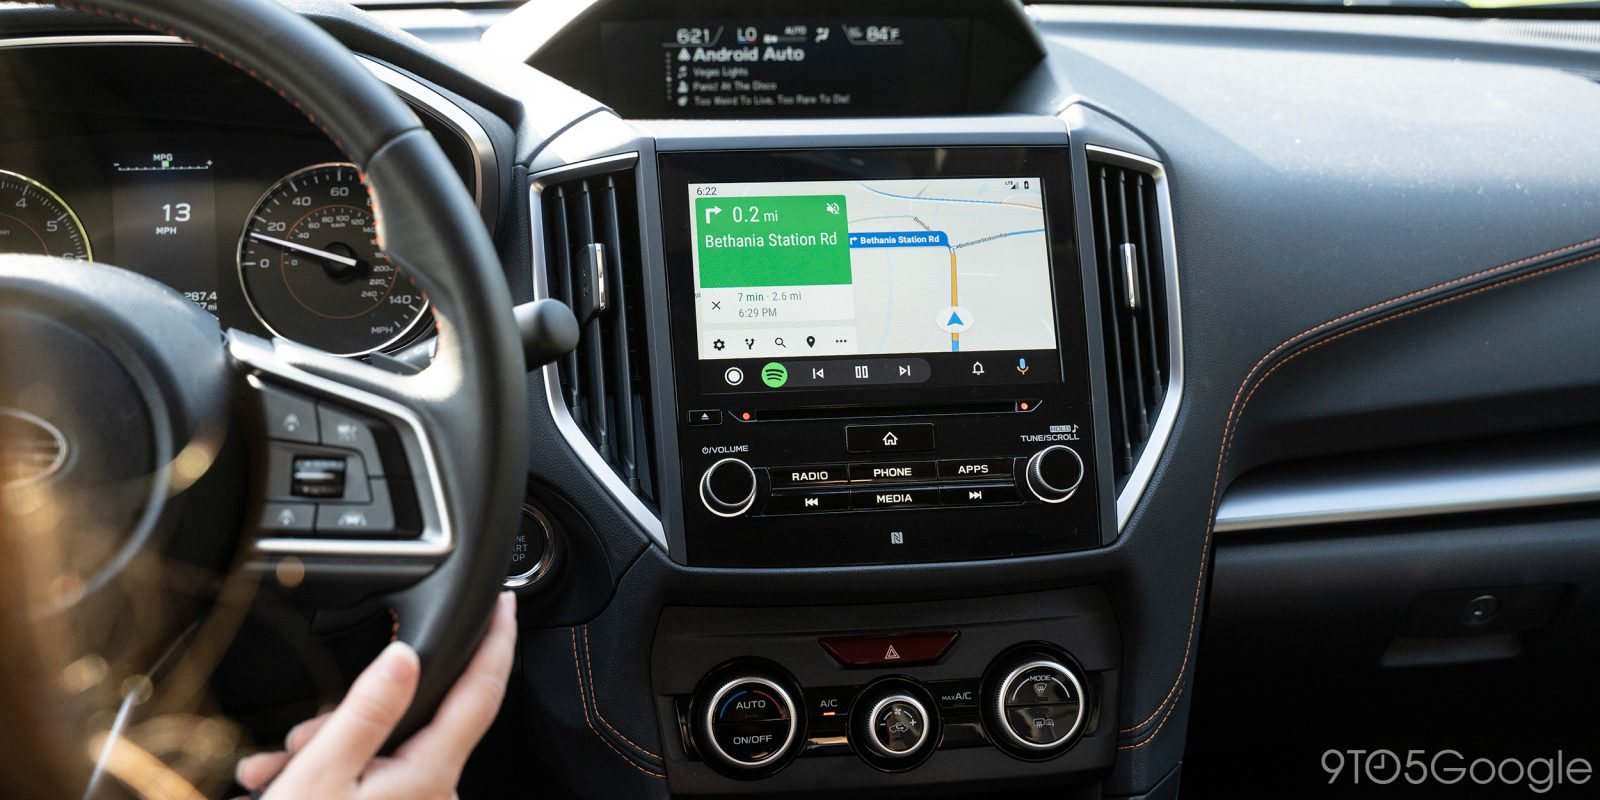 Google Maps rolls out new Android Auto shortcut ons ... on bing maps, online maps, search maps, microsoft maps, googlr maps, iphone maps, waze maps, amazon fire phone maps, ipad maps, aeronautical maps, goolge maps, msn maps, googie maps, topographic maps, stanford university maps, road map usa states maps, android maps, gppgle maps, gogole maps, aerial maps,